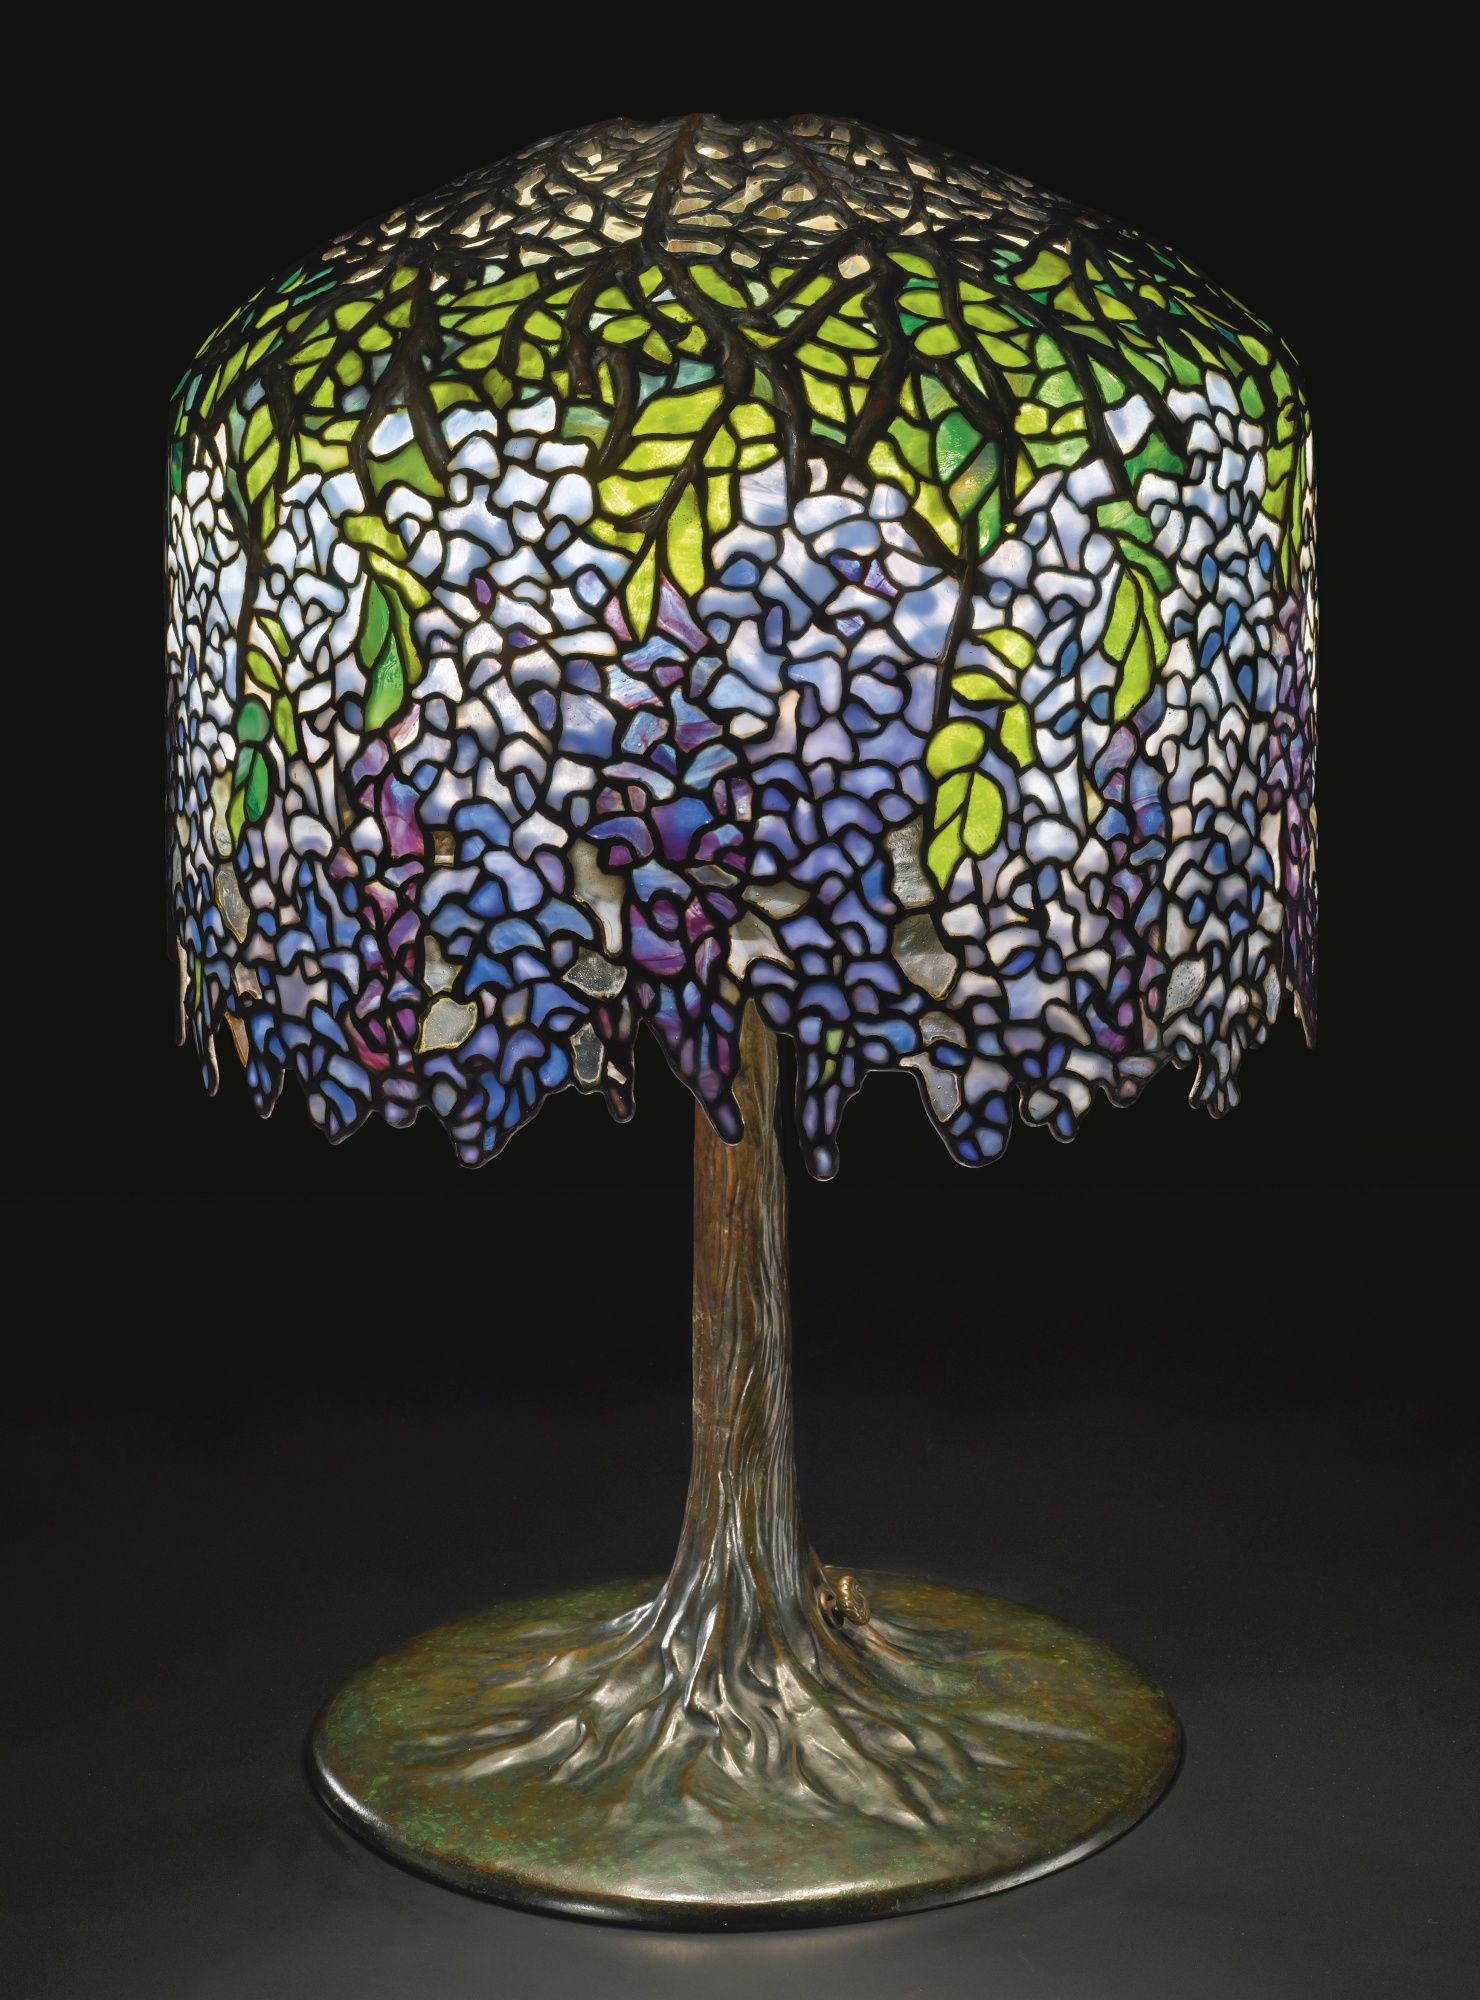 Lamp Glas In Lood Tiffany Studios New York